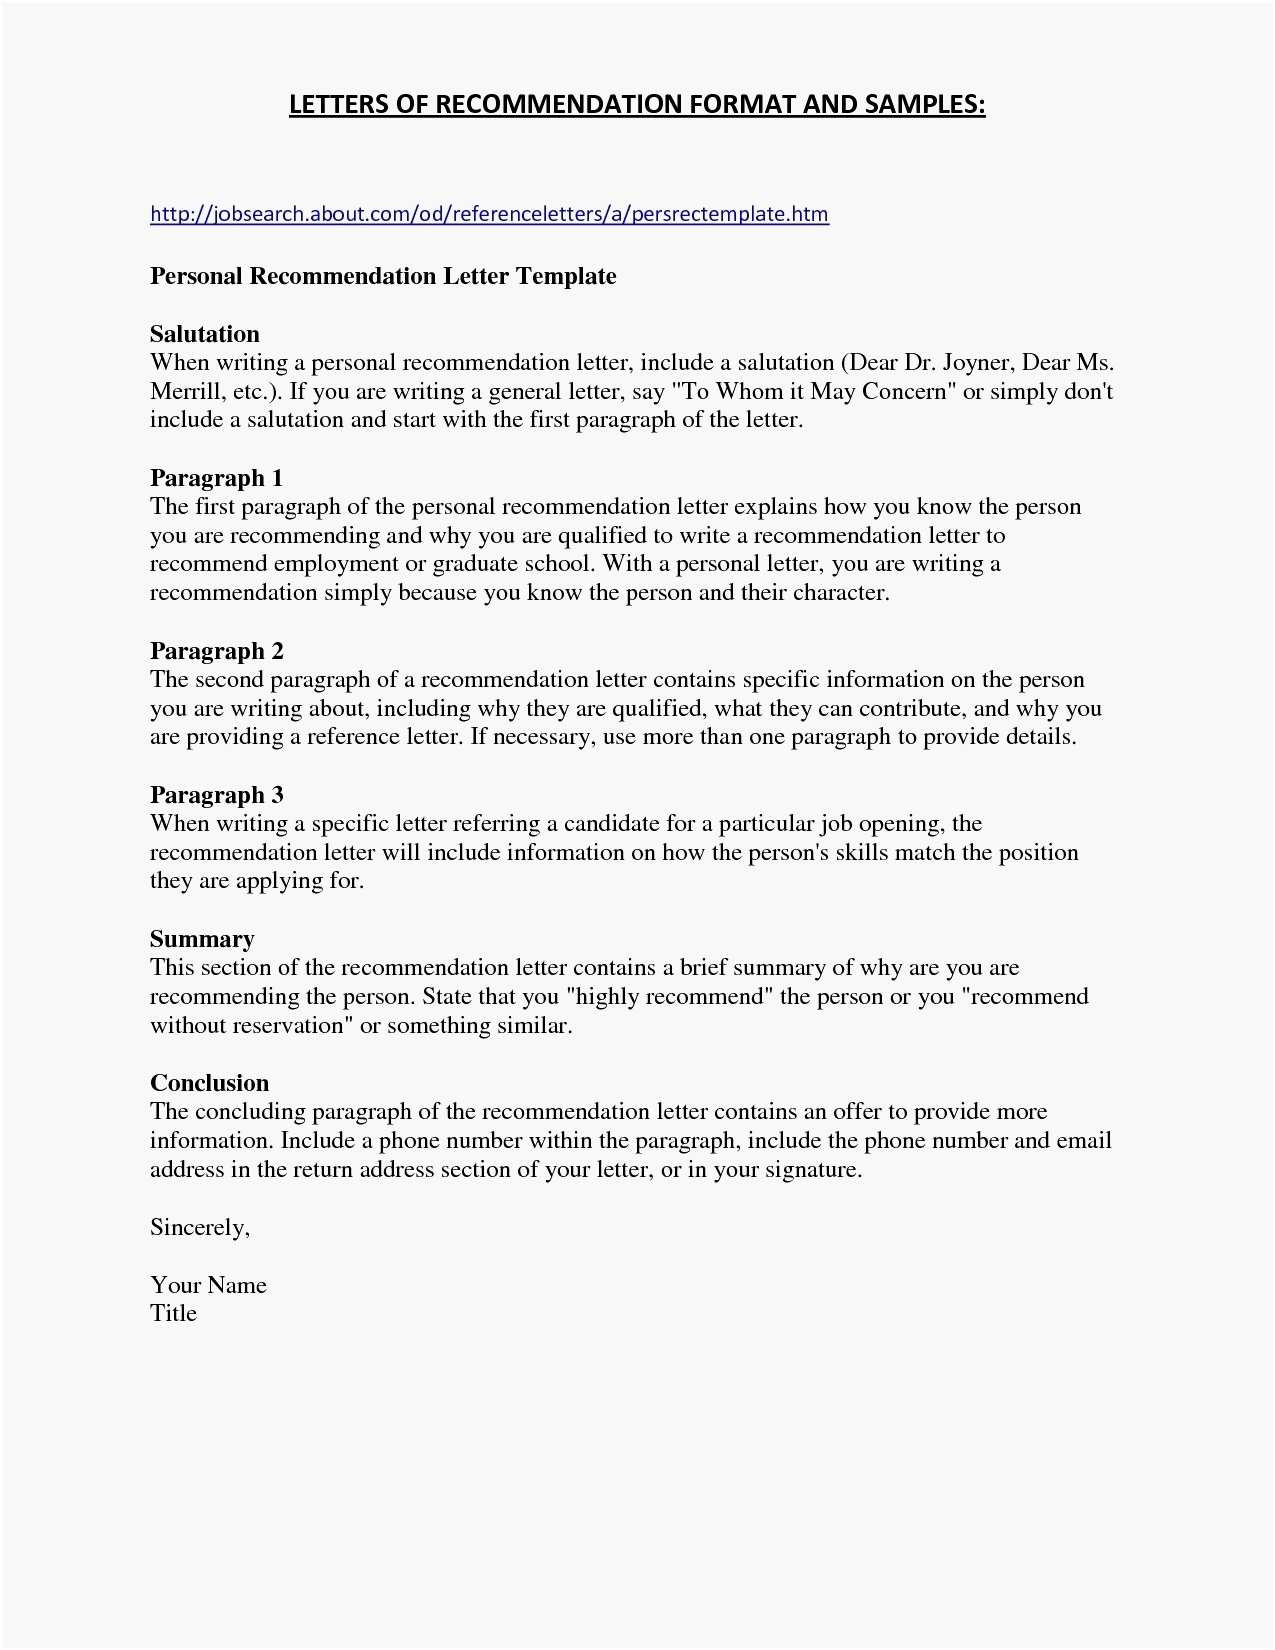 Letter to Hoa Template - Resume Cover Page Template Free Unique Resume Cover Letter Template